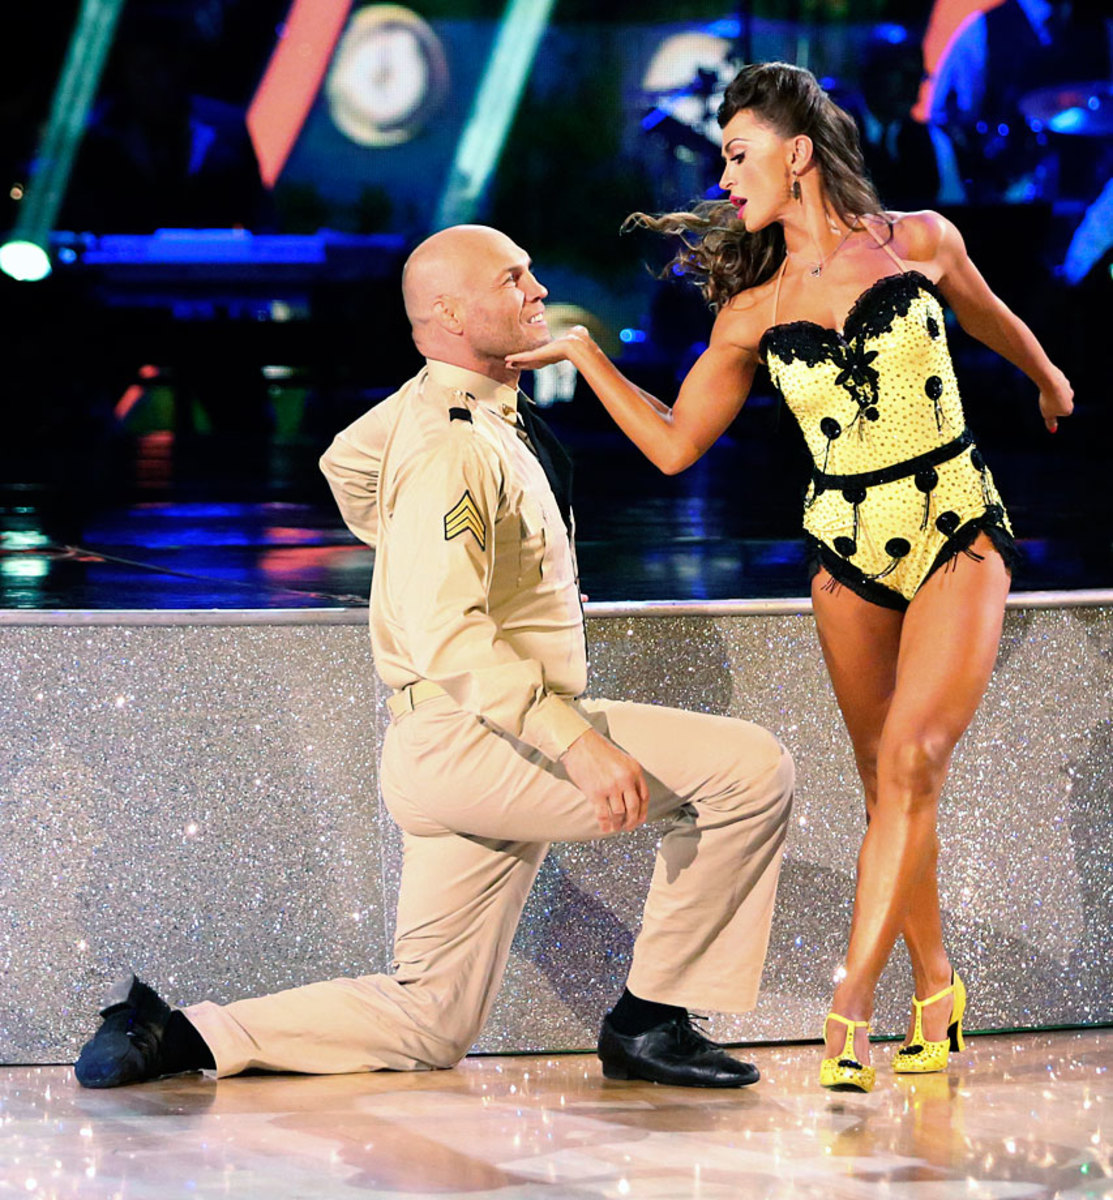 Randy-Couture-Dancing-with-the-Stars.jpg